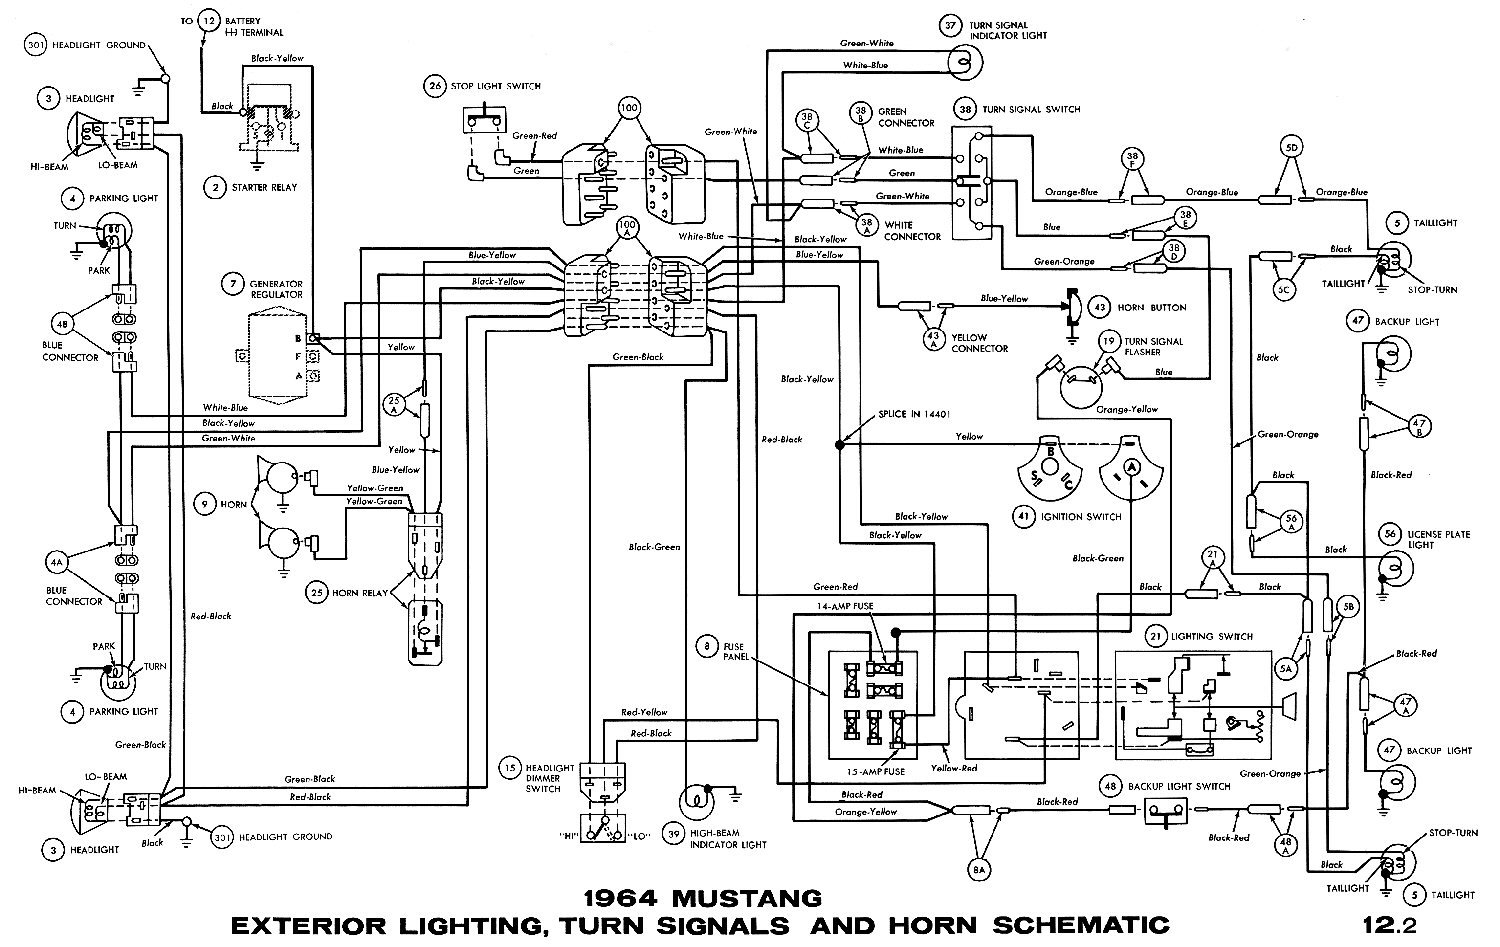 [SCHEMATICS_4FR]  1970 Mustang Instrument Wiring Diagram Trailer Tail Lights Wiring Diagram -  vwc.astrea-construction.fr | 1966 Mustang Instrument Wiring Diagram |  | Begeboy Wiring Diagram Source - ASTREA CONSTRUCTION